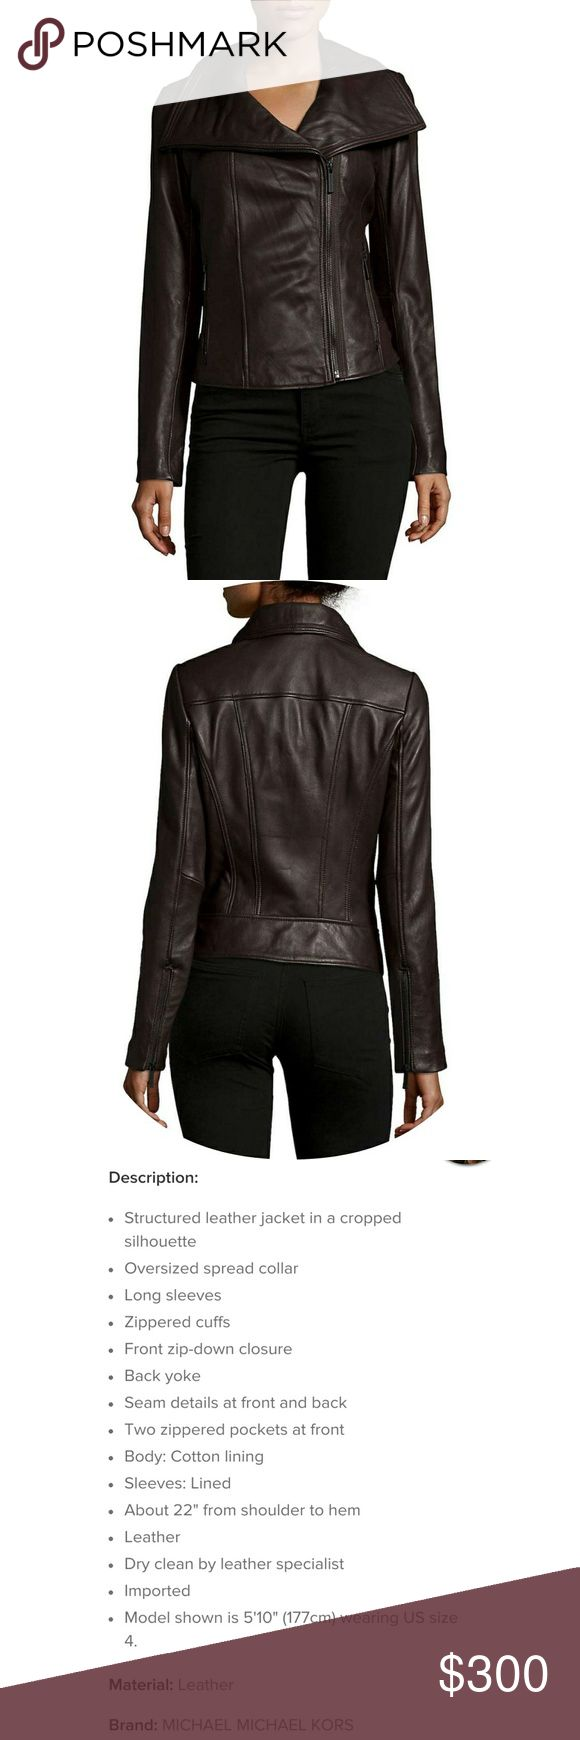 NWT Michael Kors Leather Jacket Very Dark Brown classic leather jacket. This is some of the softest, most supple leather you will find. Never used and really just a beautiful piece. Feel free to ask for more pics or details  Guaranteed authentic  Comes from a smoke free home   Accepting all offers and will discount for bundles Michael Kors Jackets & Coats